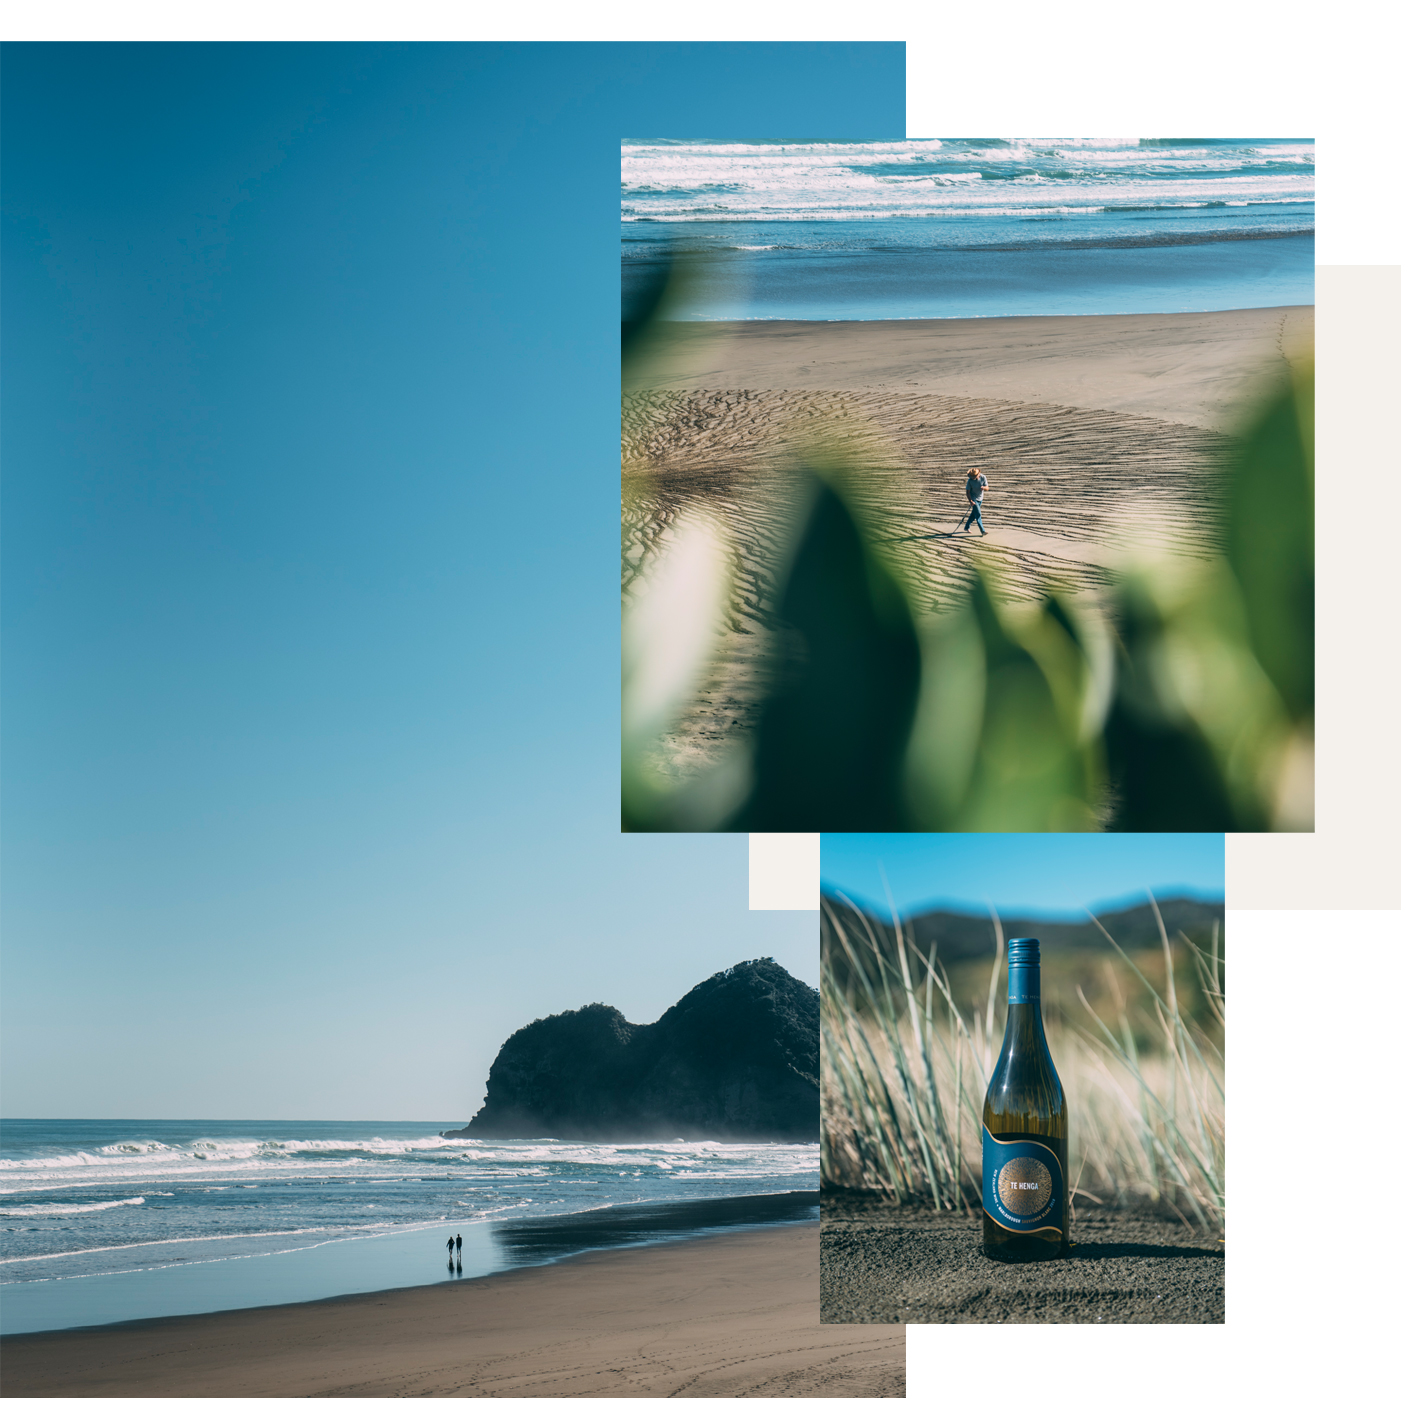 INSPIRED BY THE WEST, ENJOYED EVERYWHERE - Taking inspiration from the west coast winds as it whips through the marram grass, Te Henga Wines was a very natural partnership for me to engage in. My client wanted to showcase the wine in their namesake environment of Bethells Beach, Waitakere.Our aim was to capture the essence of the unique rugged landscape and the feeling of enjoying a wine with loved ones. Spoilt with a beautiful landscape, natural textures, and golden West Coast light we had an epic day capturing the amazing sand art and Te Henga Wines beautiful new bottles.